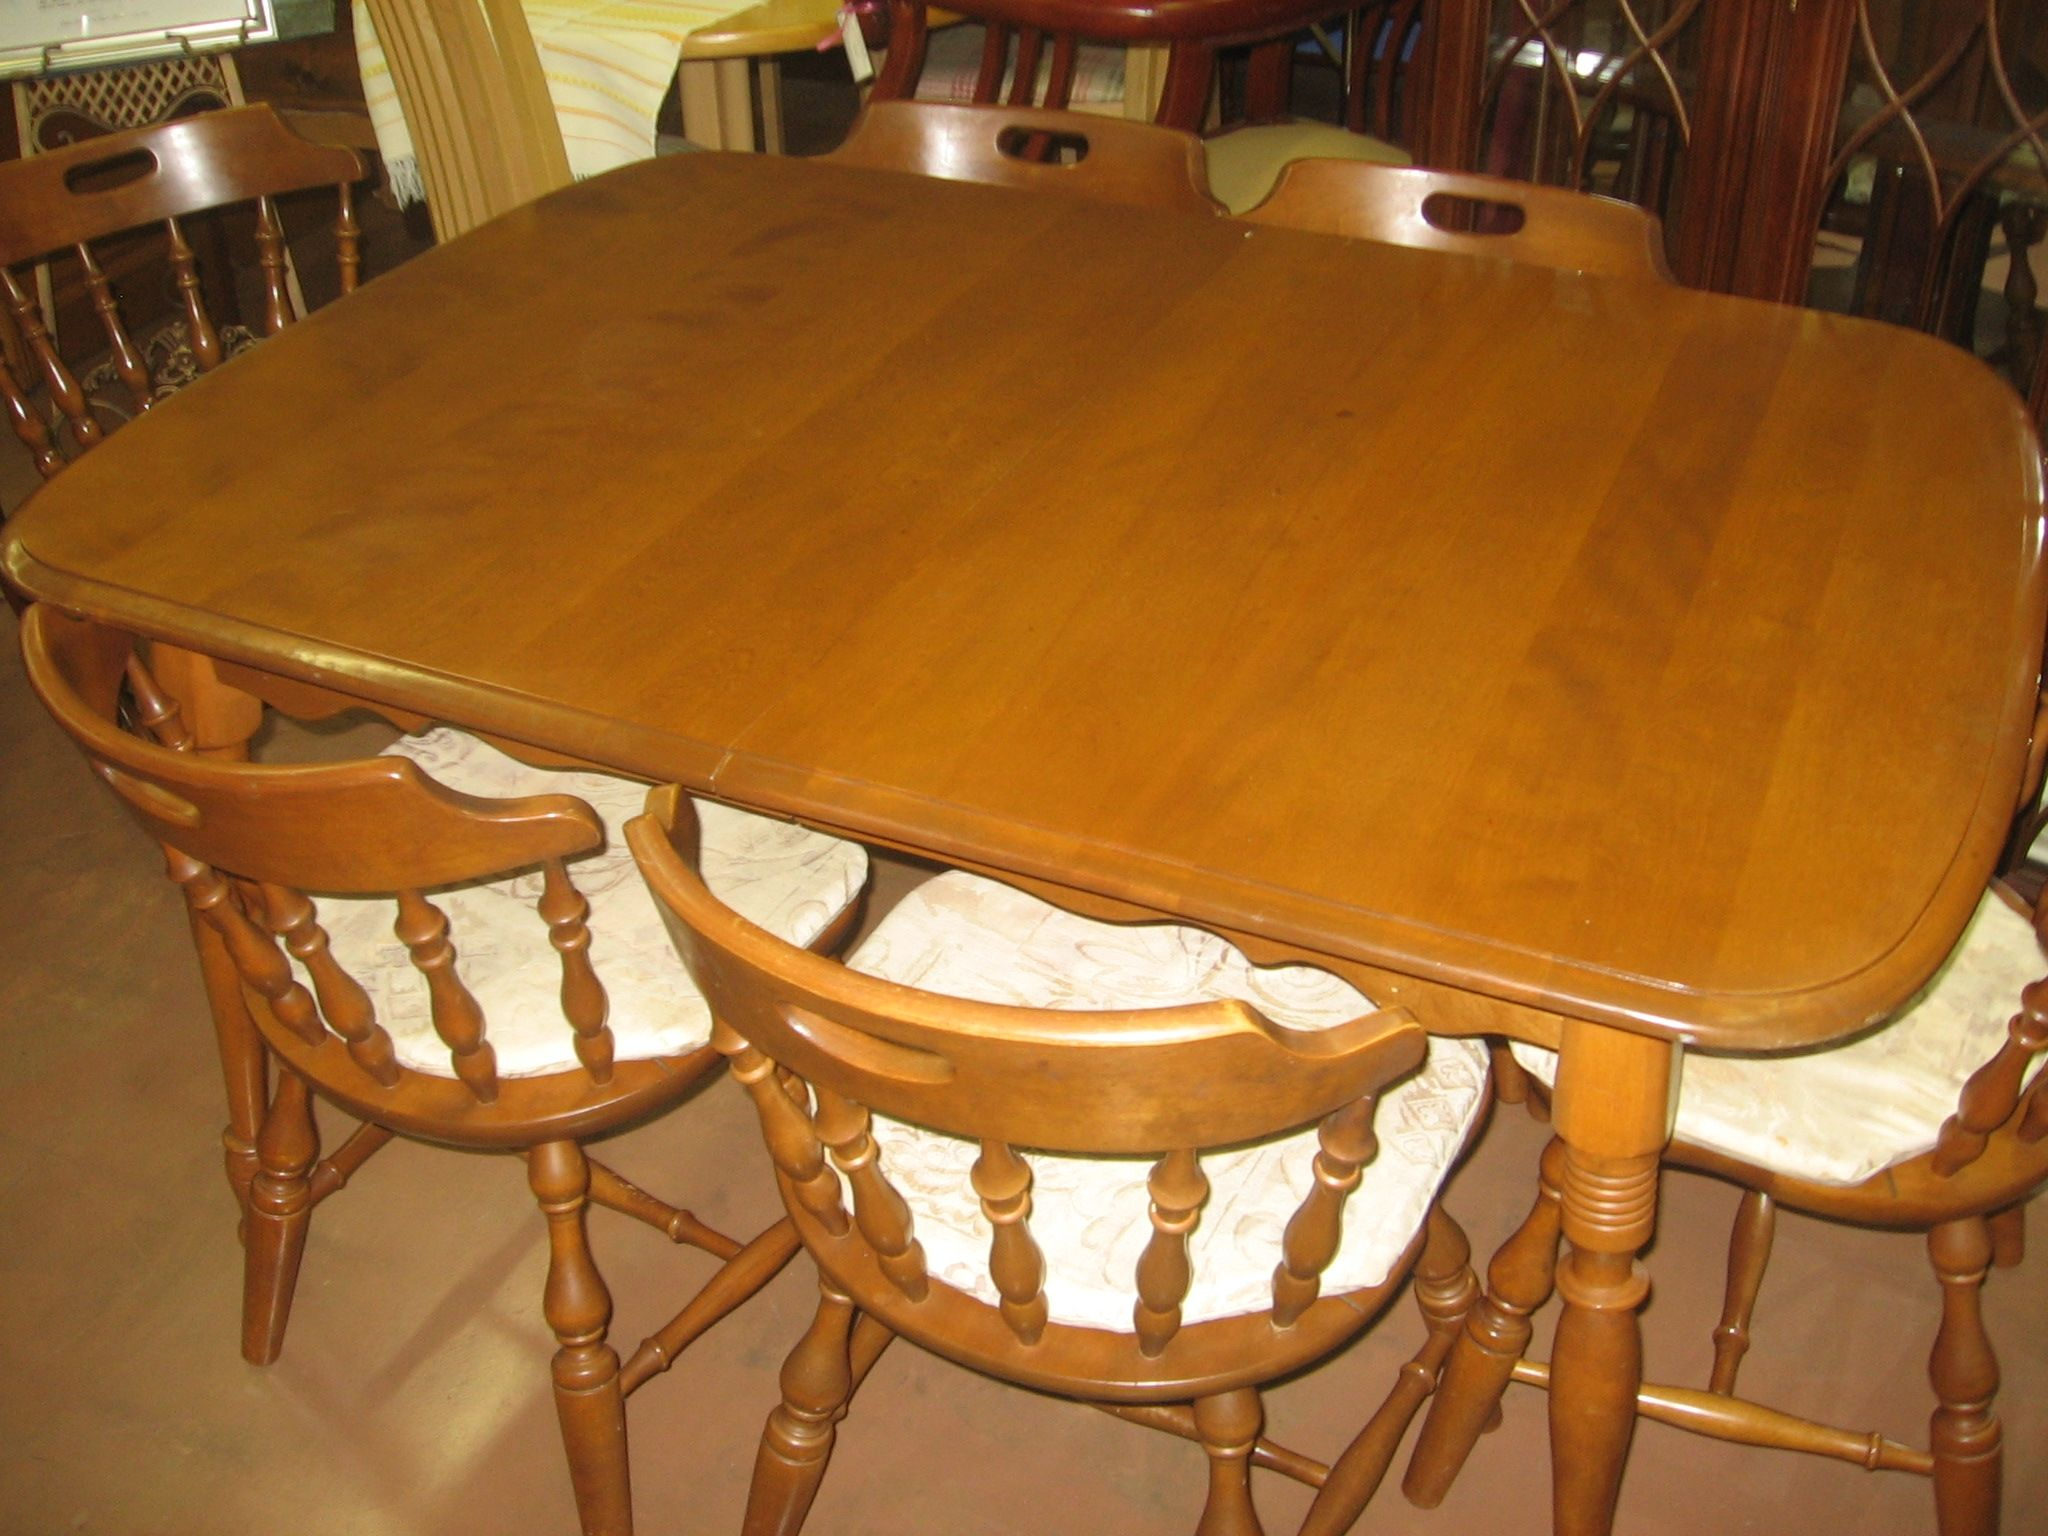 Vintage Maple Kitchen Table Today S Kitchen Is A Place Itis A Place For Family And Friends To Gather Togethe Maple Dining Table Maple Furniture Dining Table